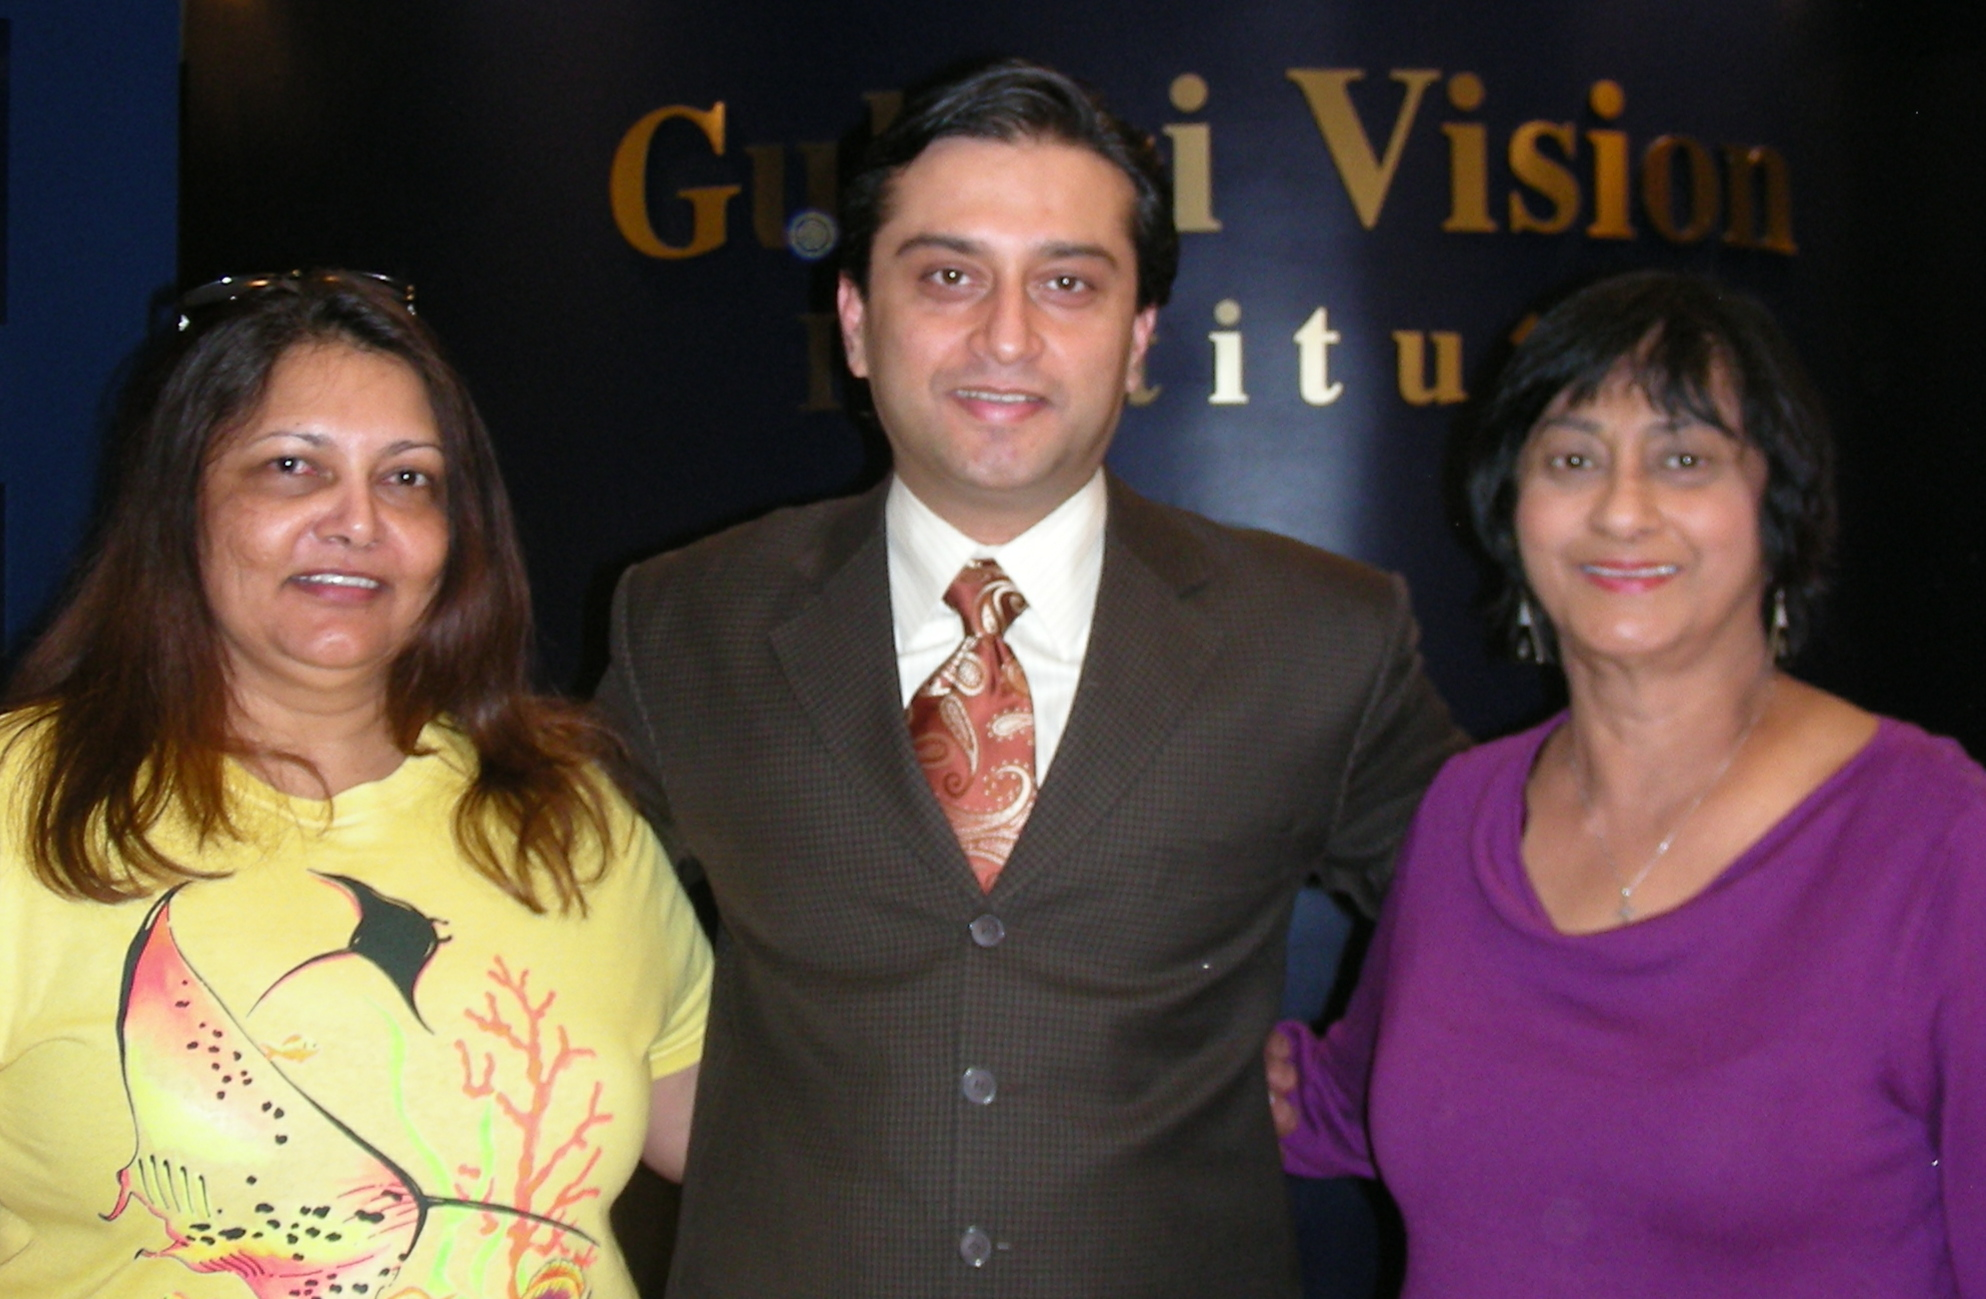 Bernadette and Maggie (cousin from Virginia) with Dr.Gulani Gulani Vision Institute Jacksonville Florida